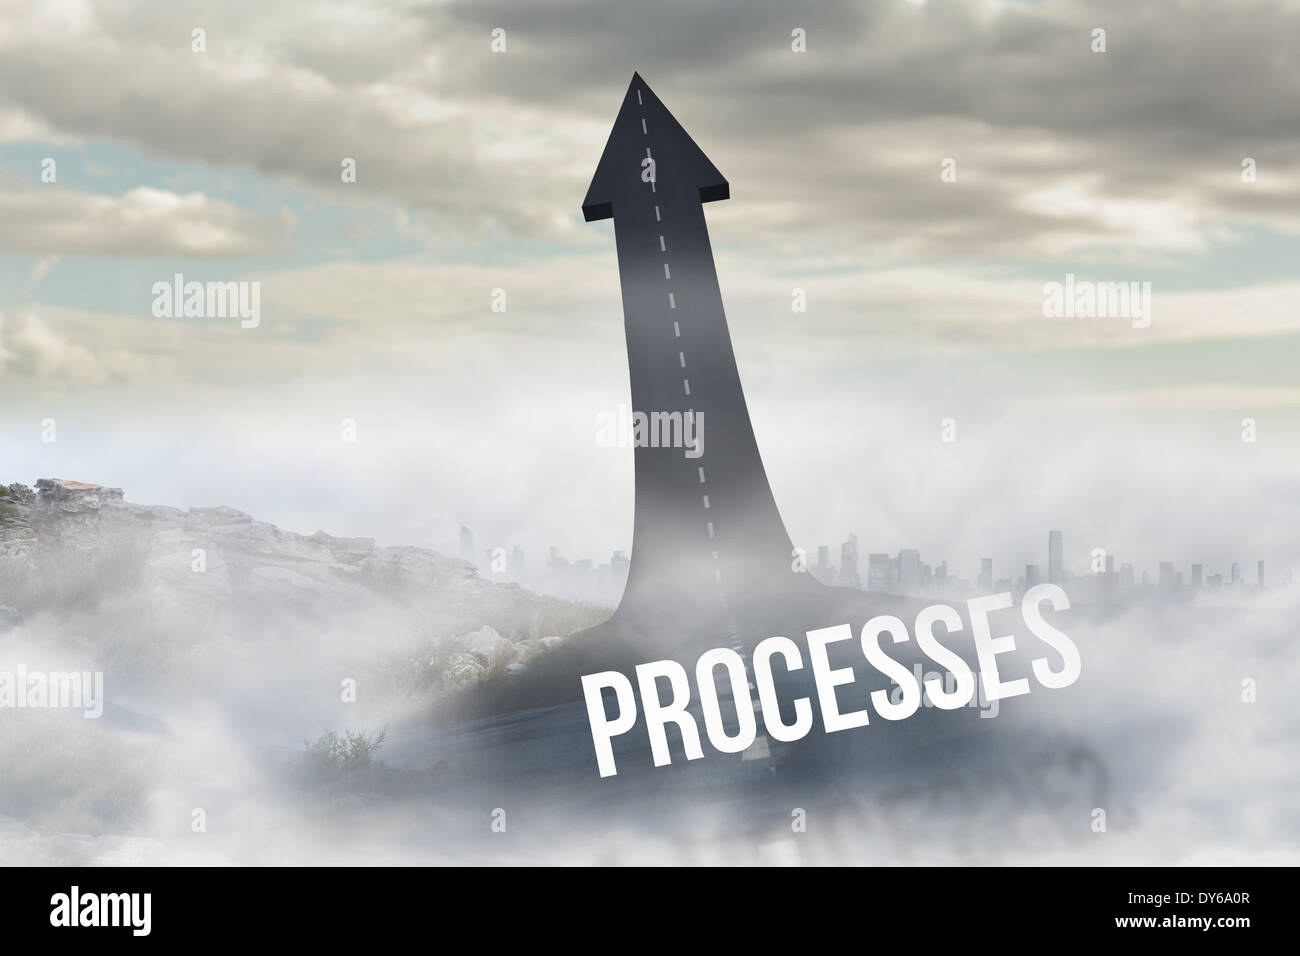 Processes against road turning into arrow - Stock Image